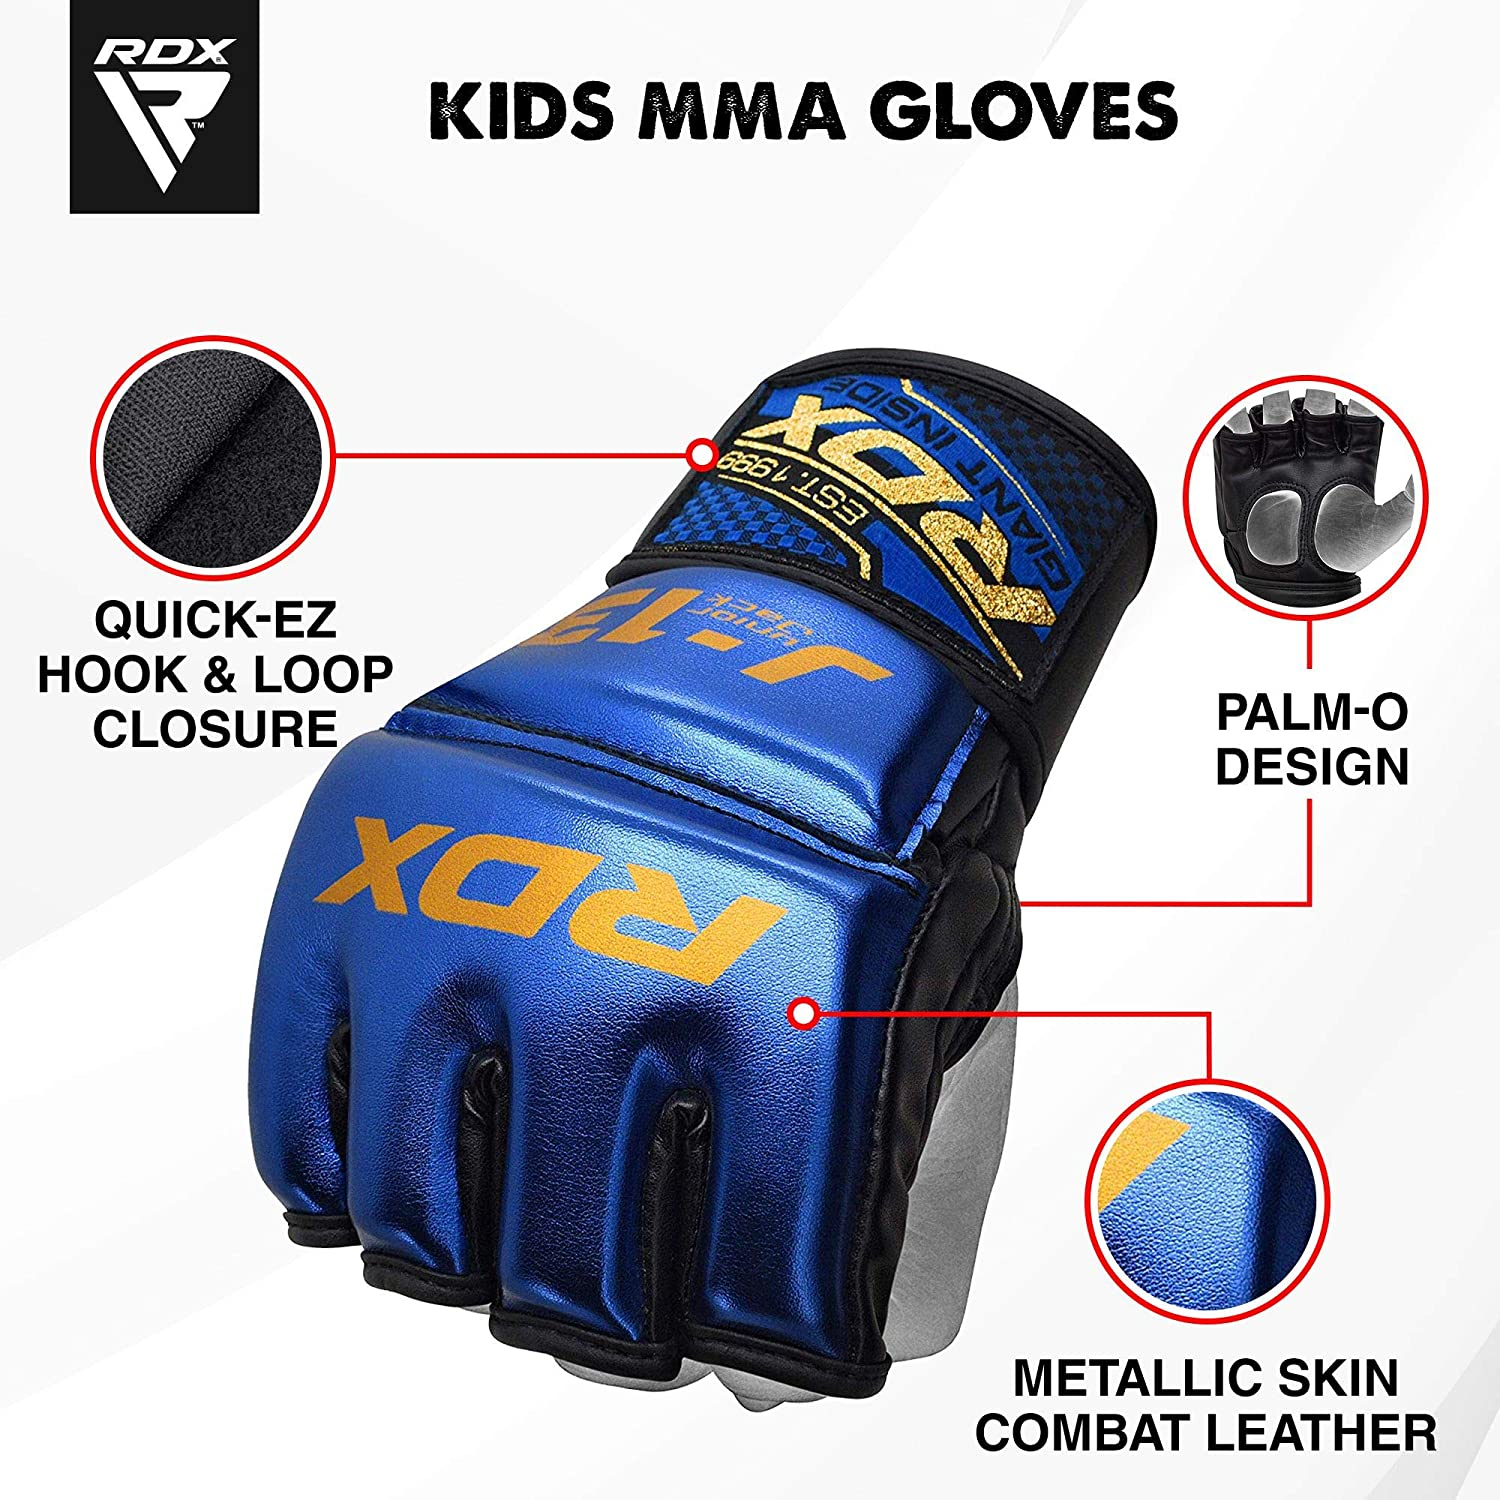 Good for Sparring Punching Bag Kickboxing RDX Kids MMA Gloves for Martial Arts Grappling Training Muay Thai Youth Metallic Skin Combat Leather Mitts Junior Cage Fighting